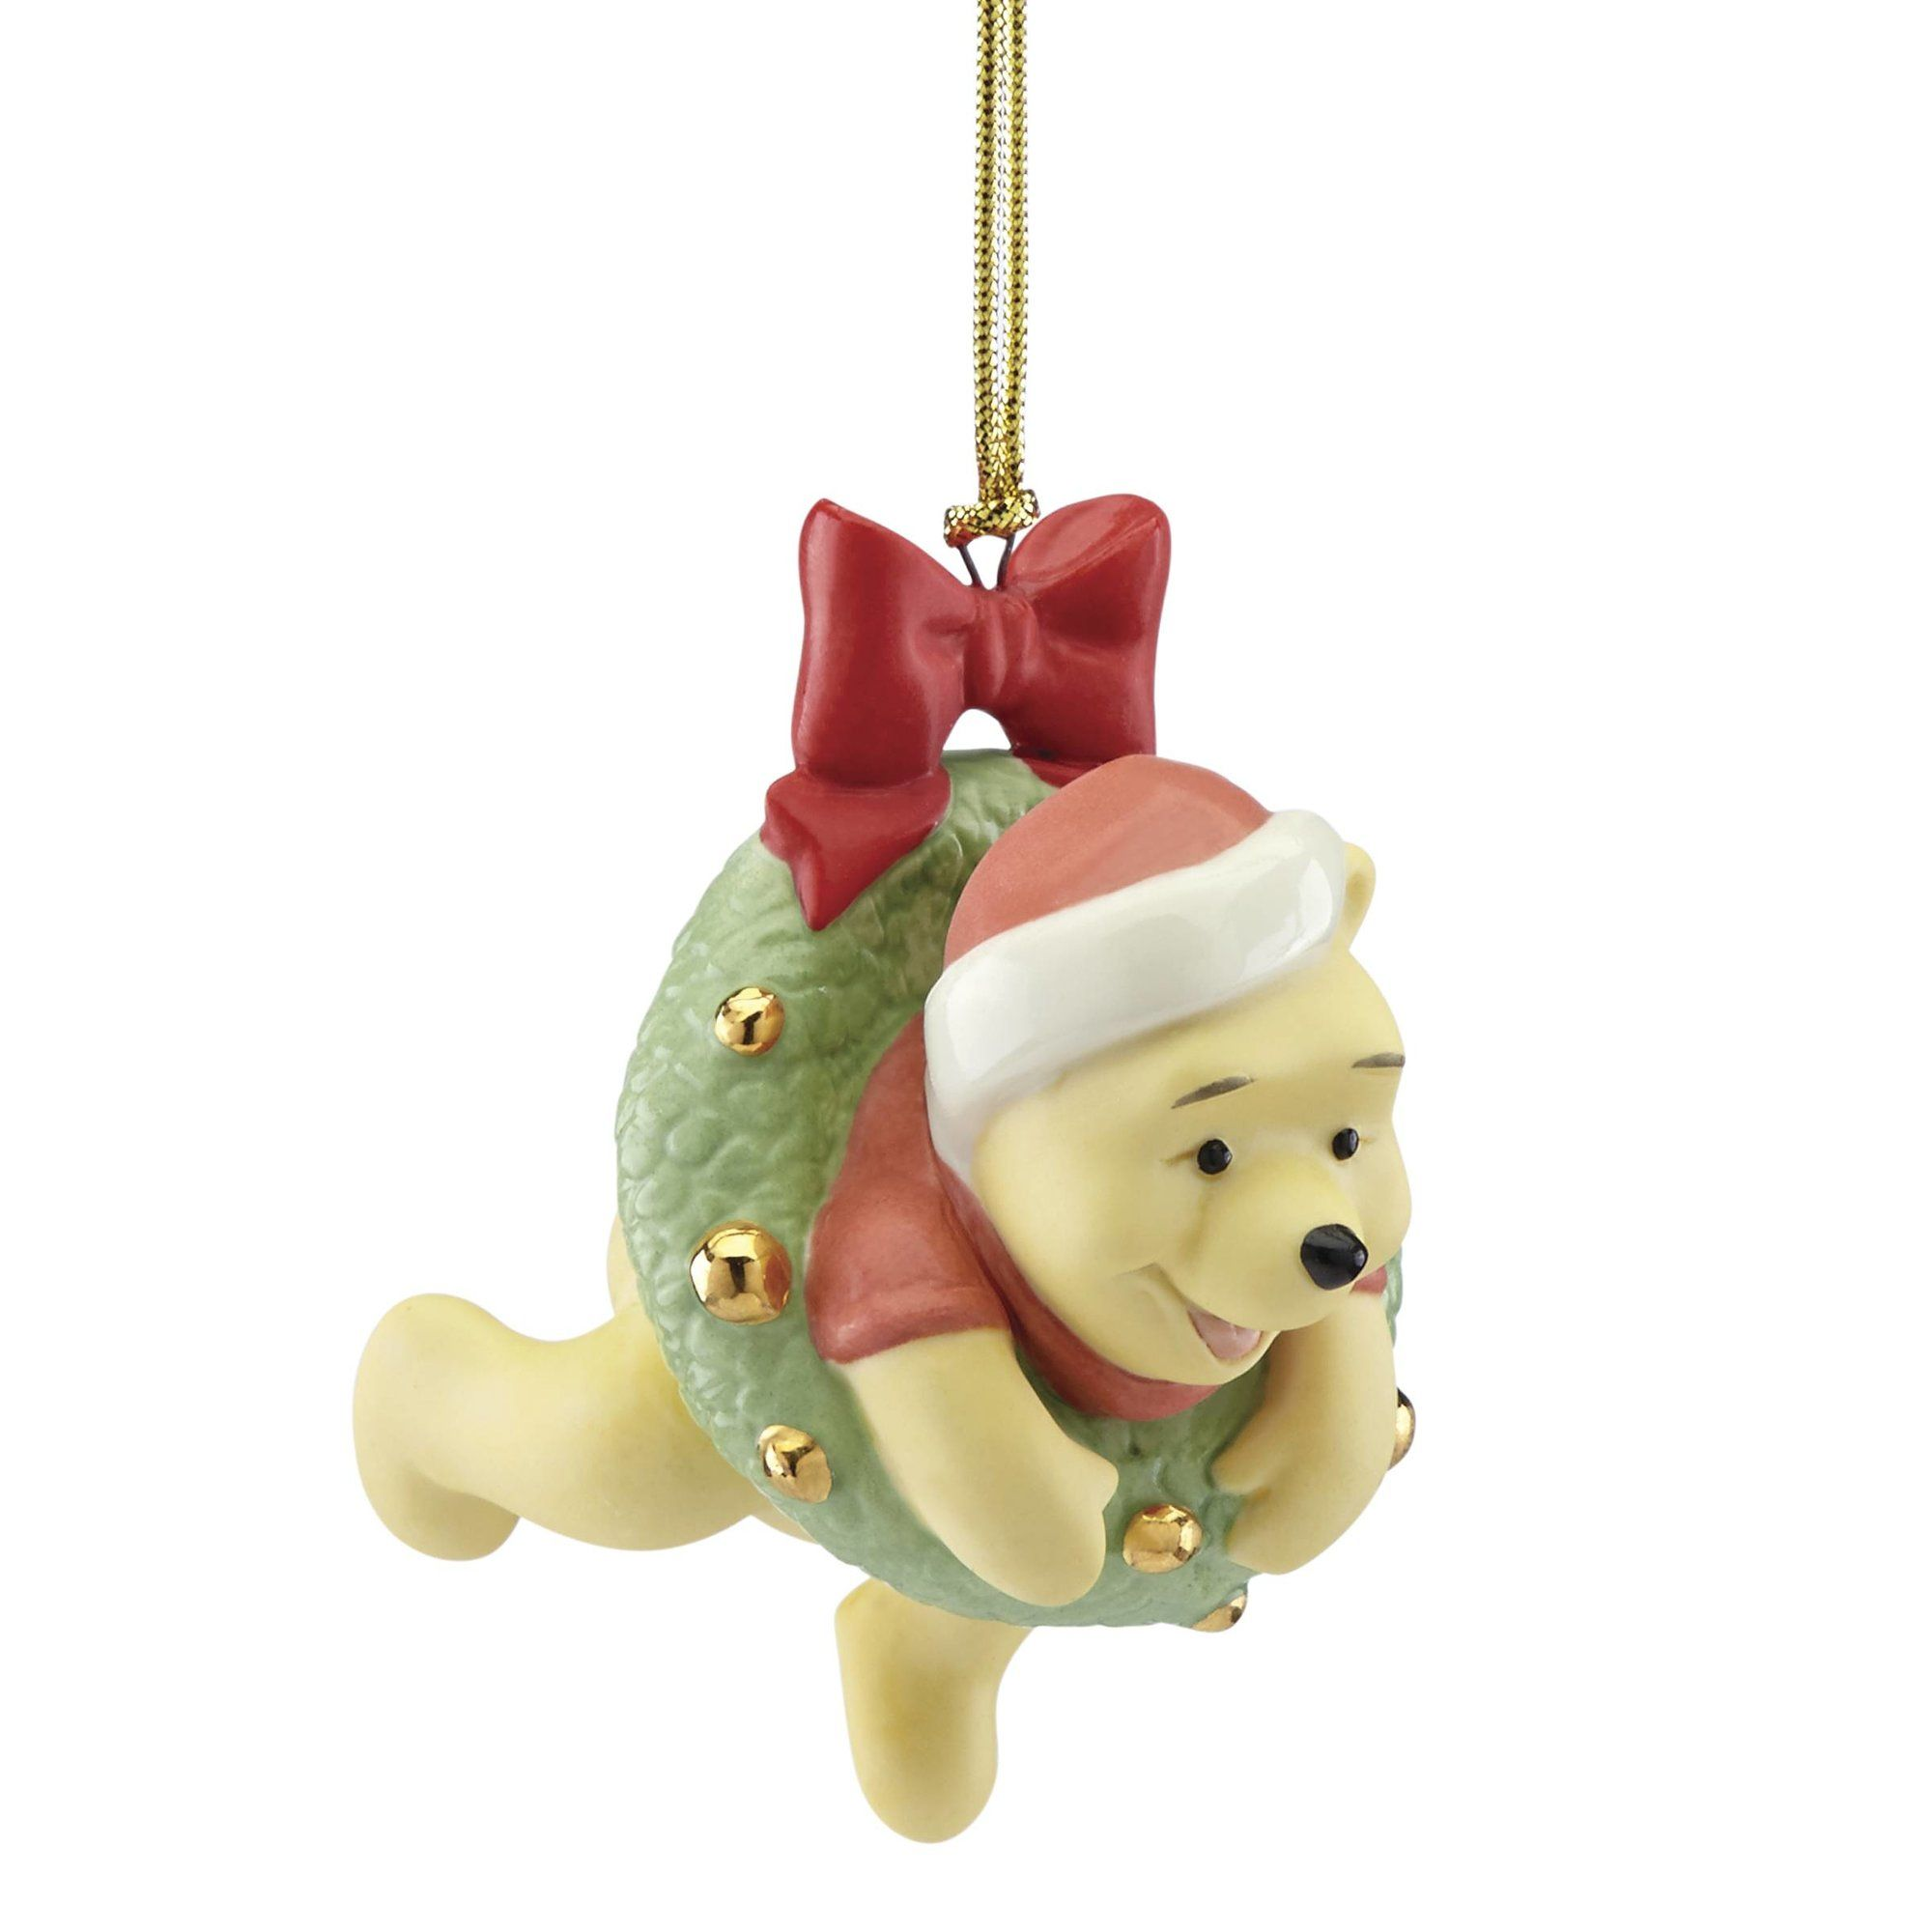 Home interior jesus figurines  hanging around with pooh hanging figurine ornament  products